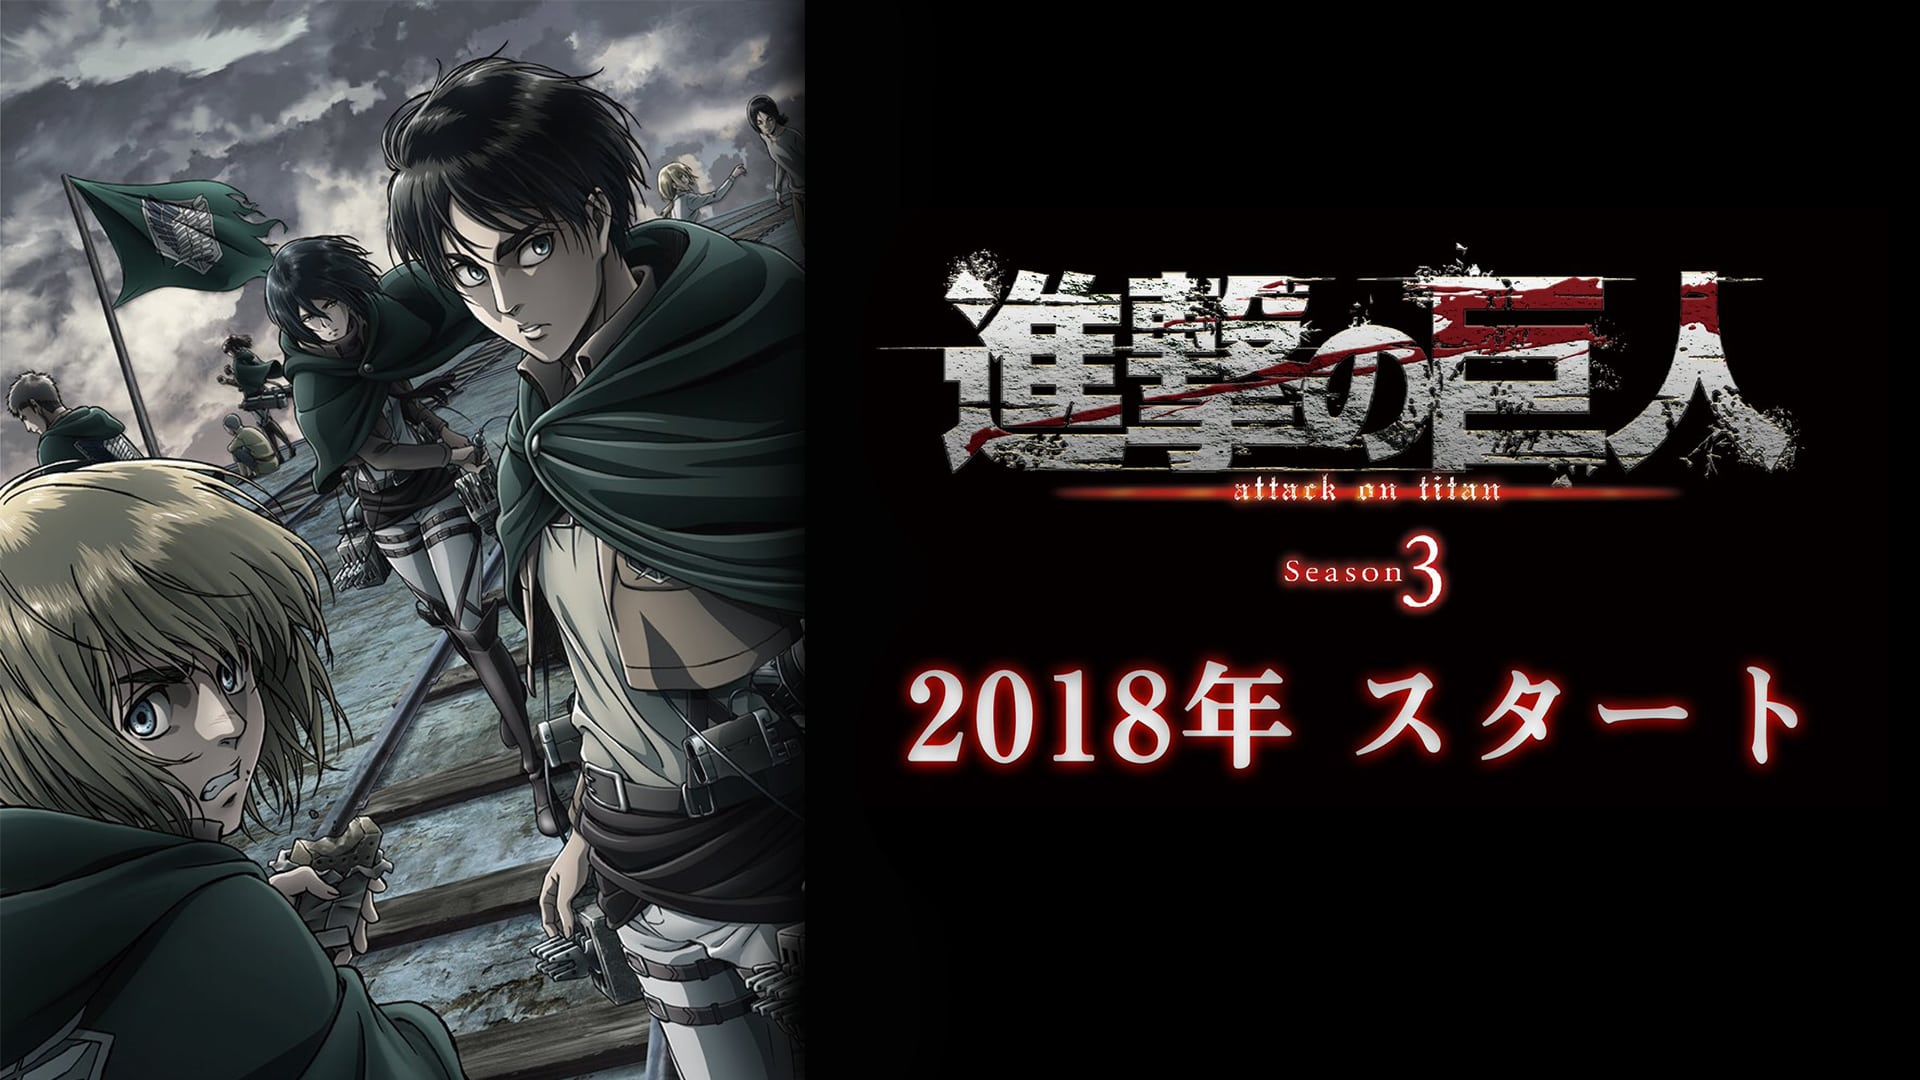 Titan attack on titan eren 5